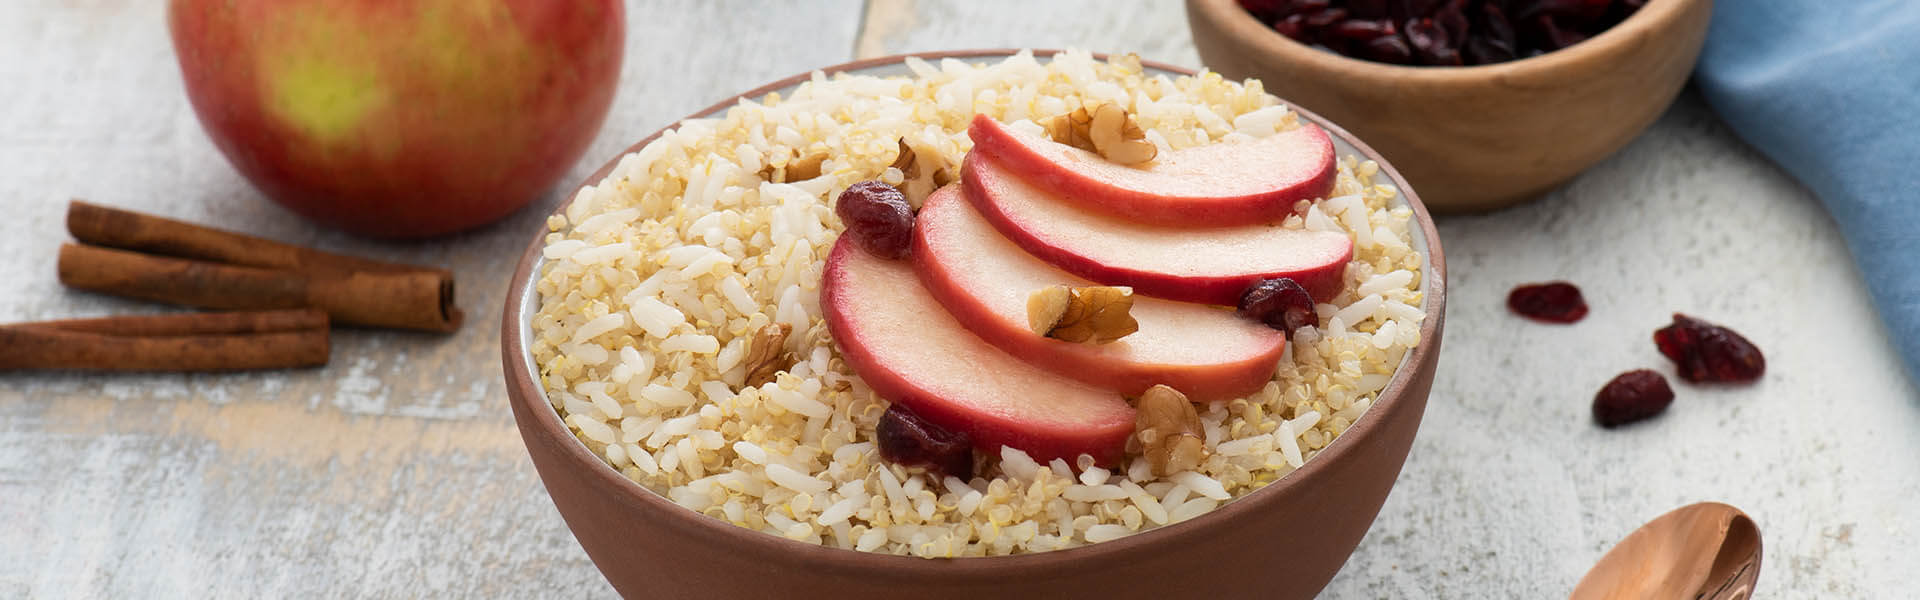 Apple Cinnamon Jasmine Rice & Quinoa for Breakfast